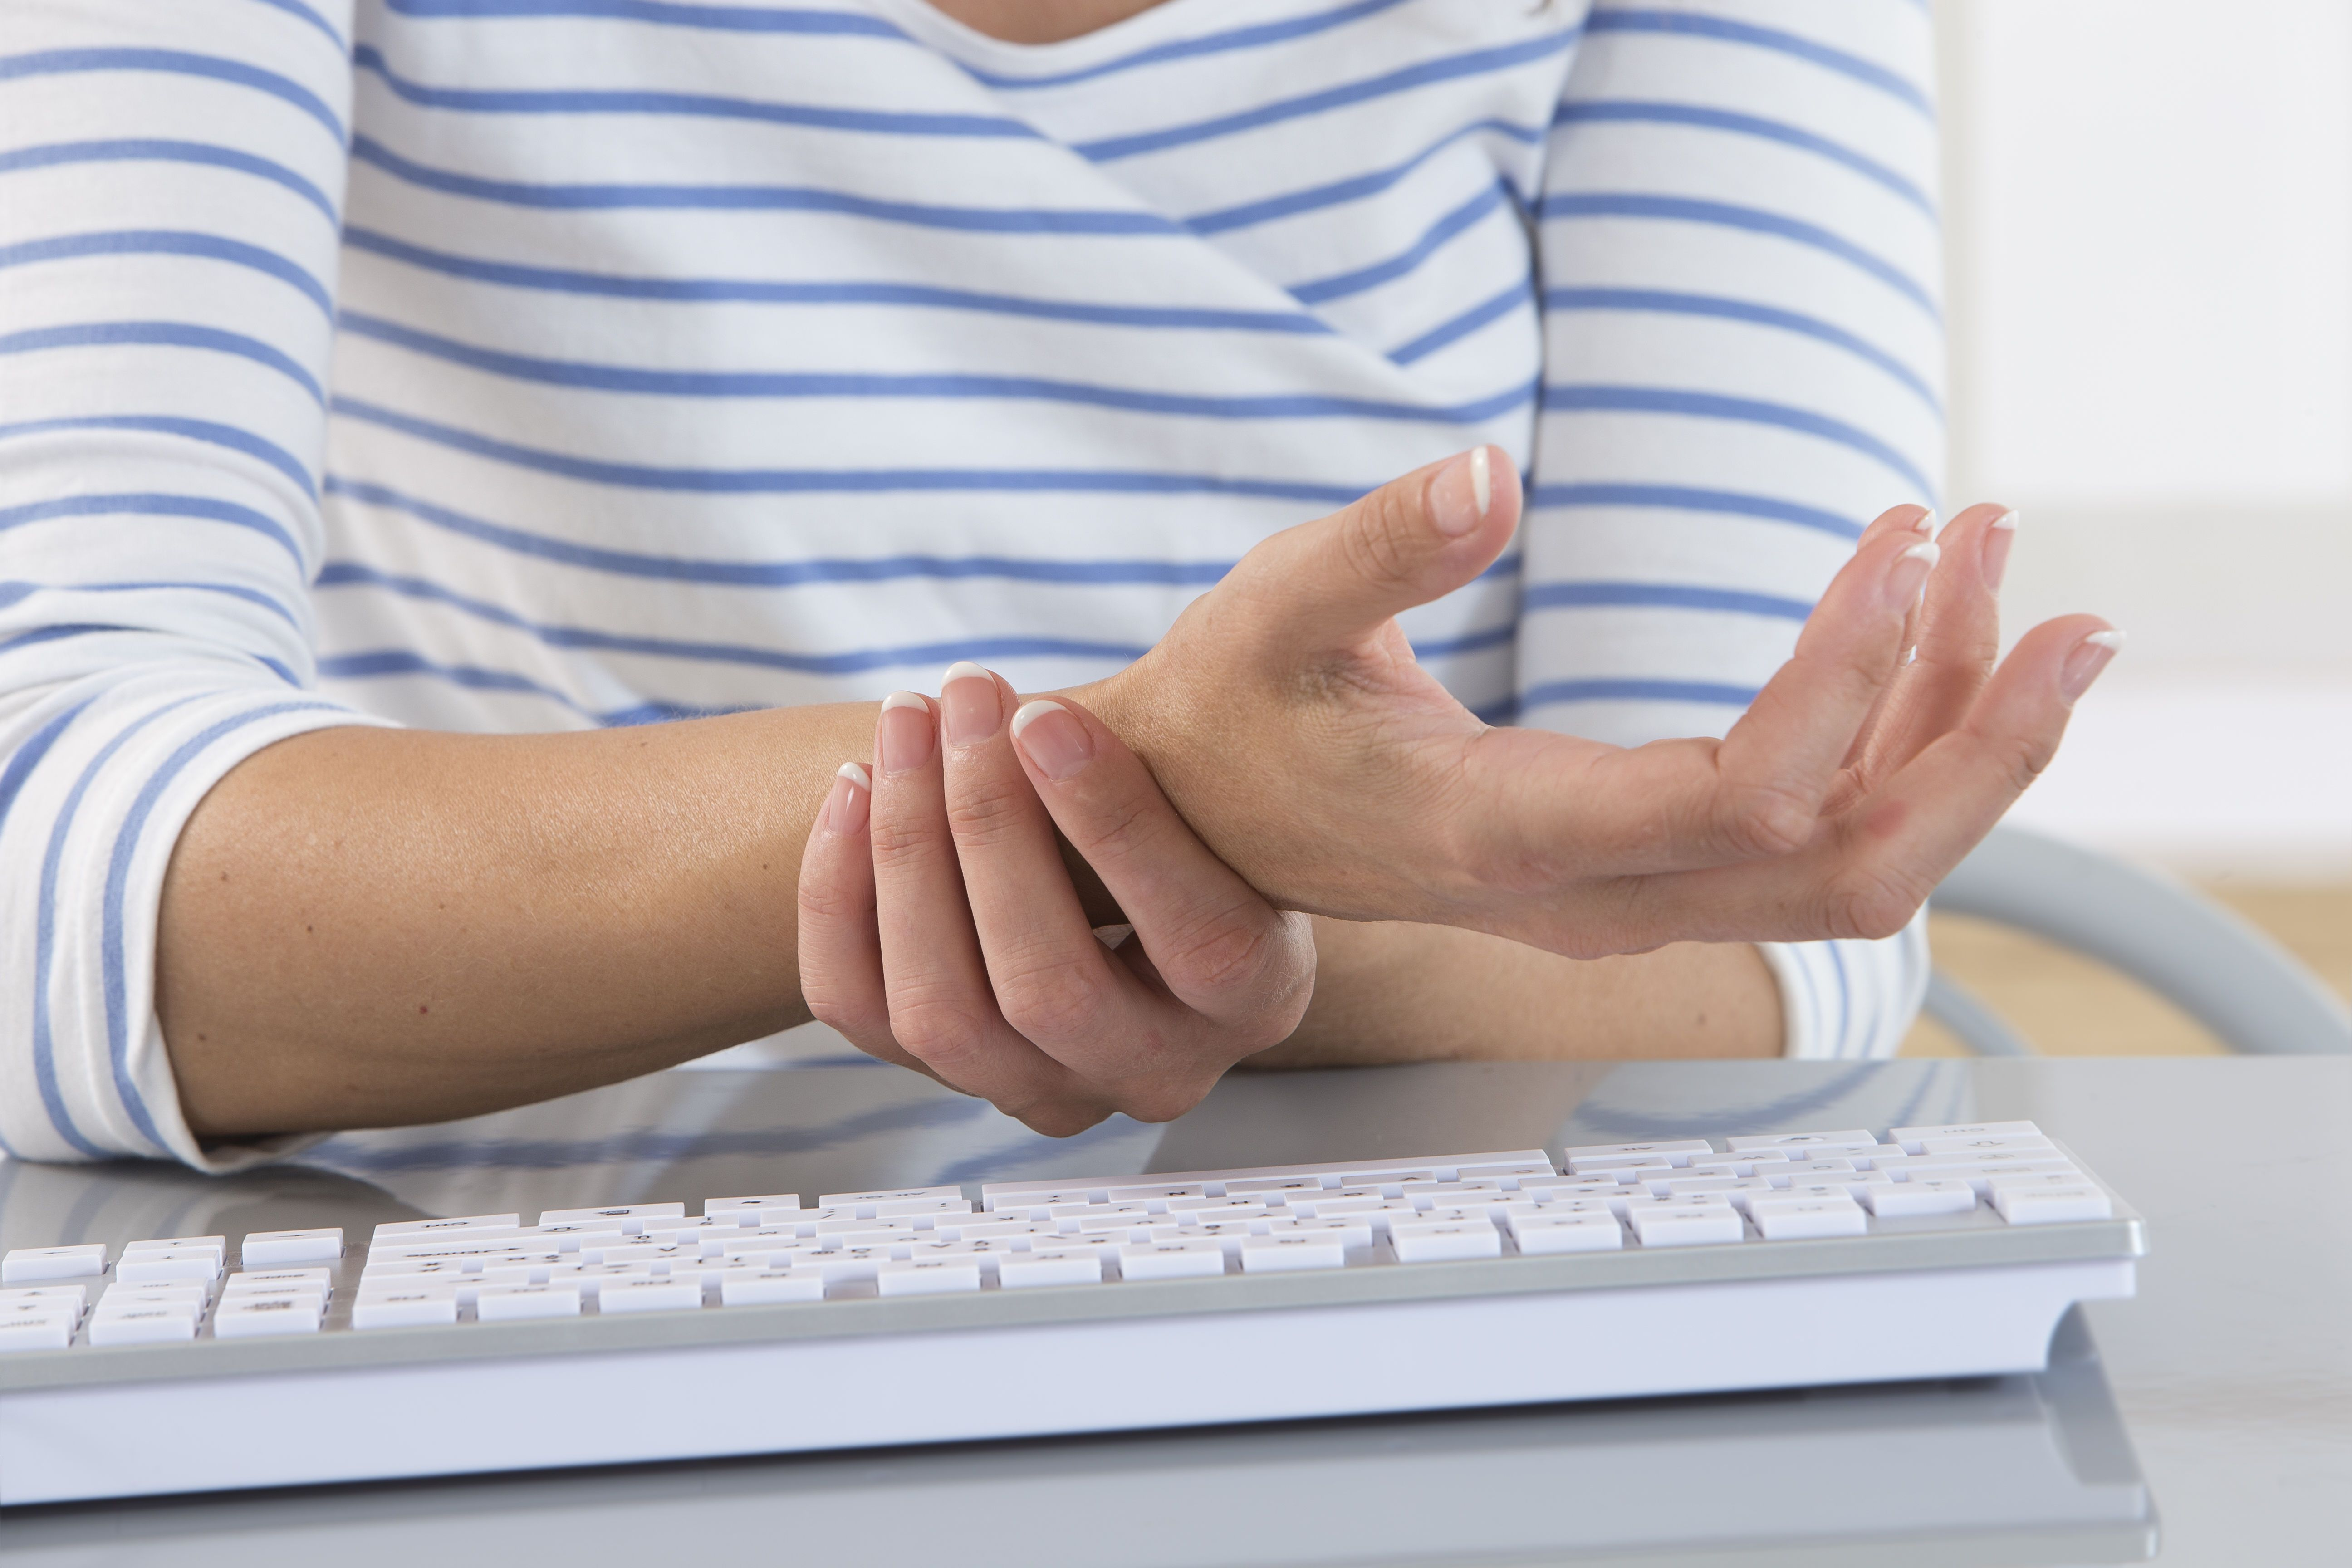 body aches carpal tunnel syndrome